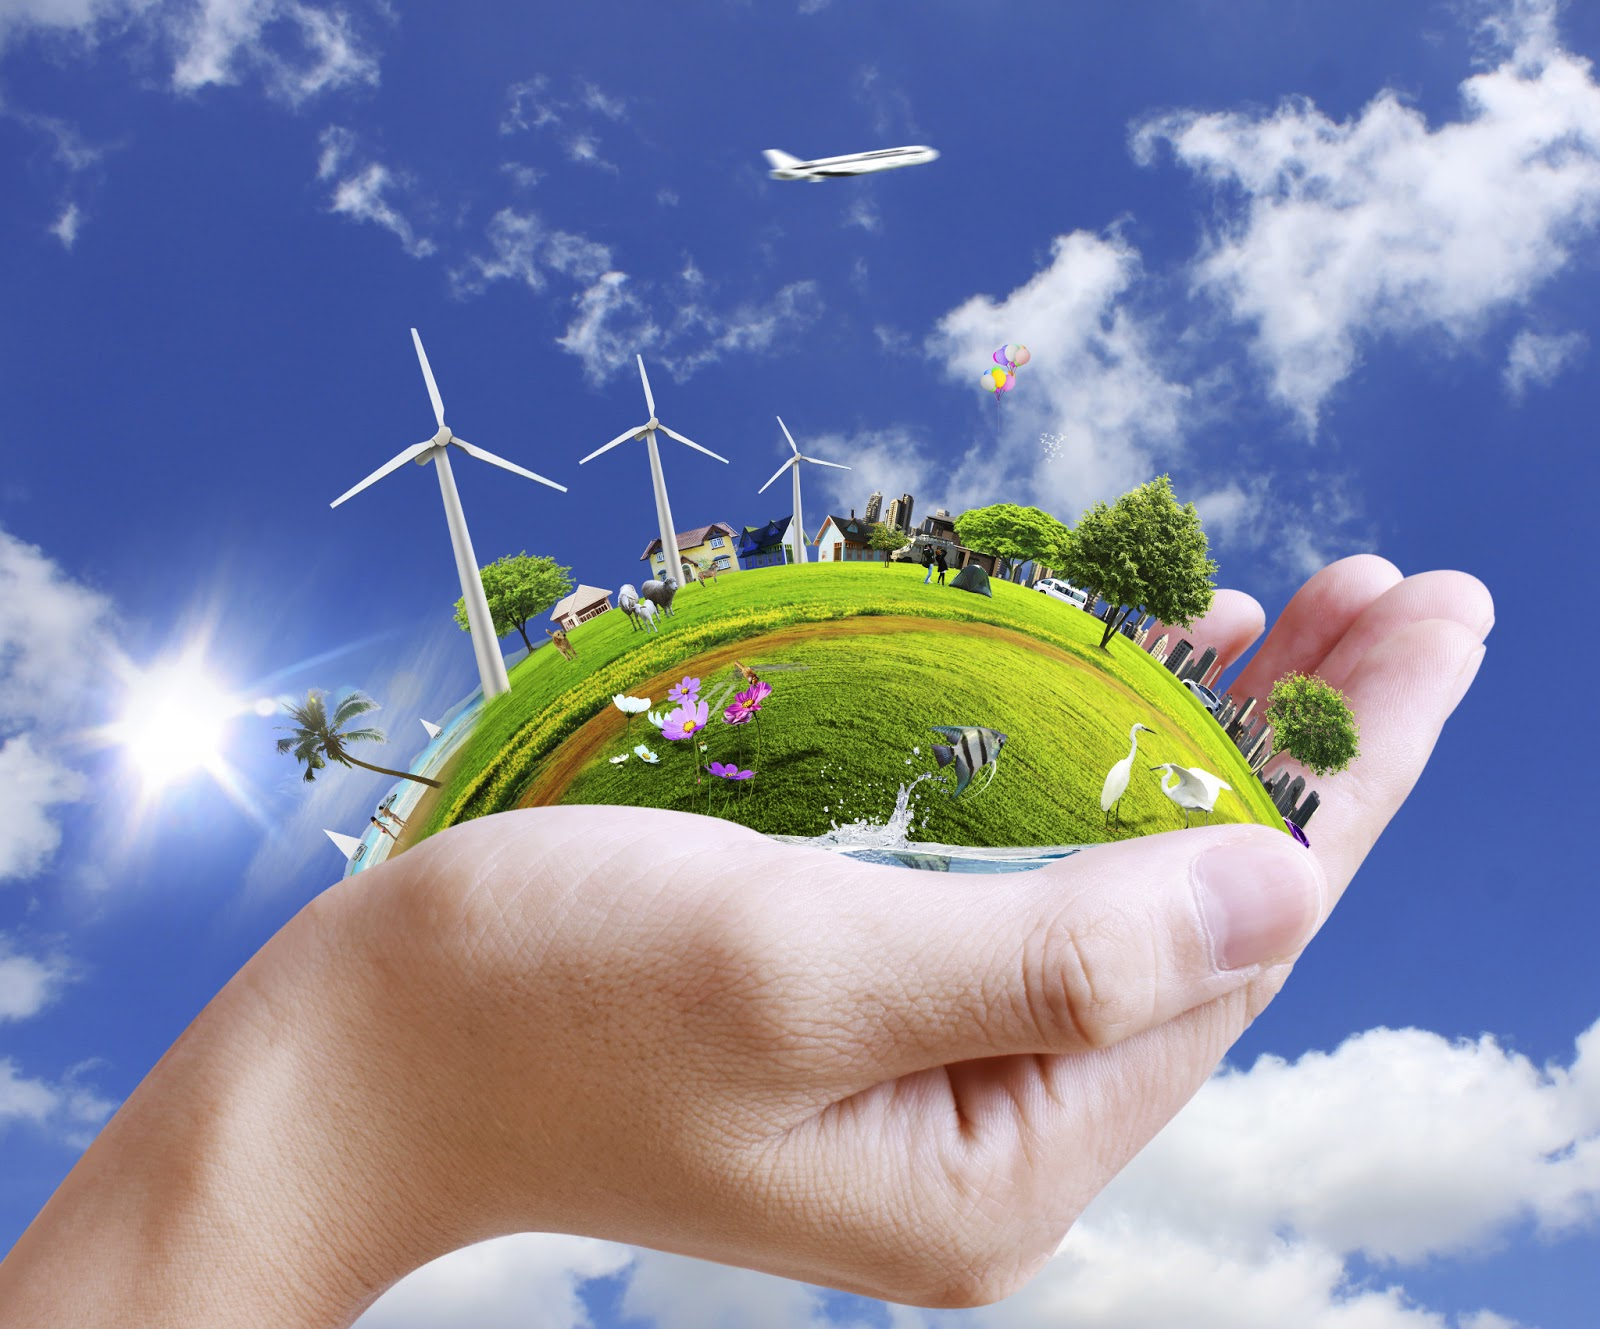 How technology affects the environment